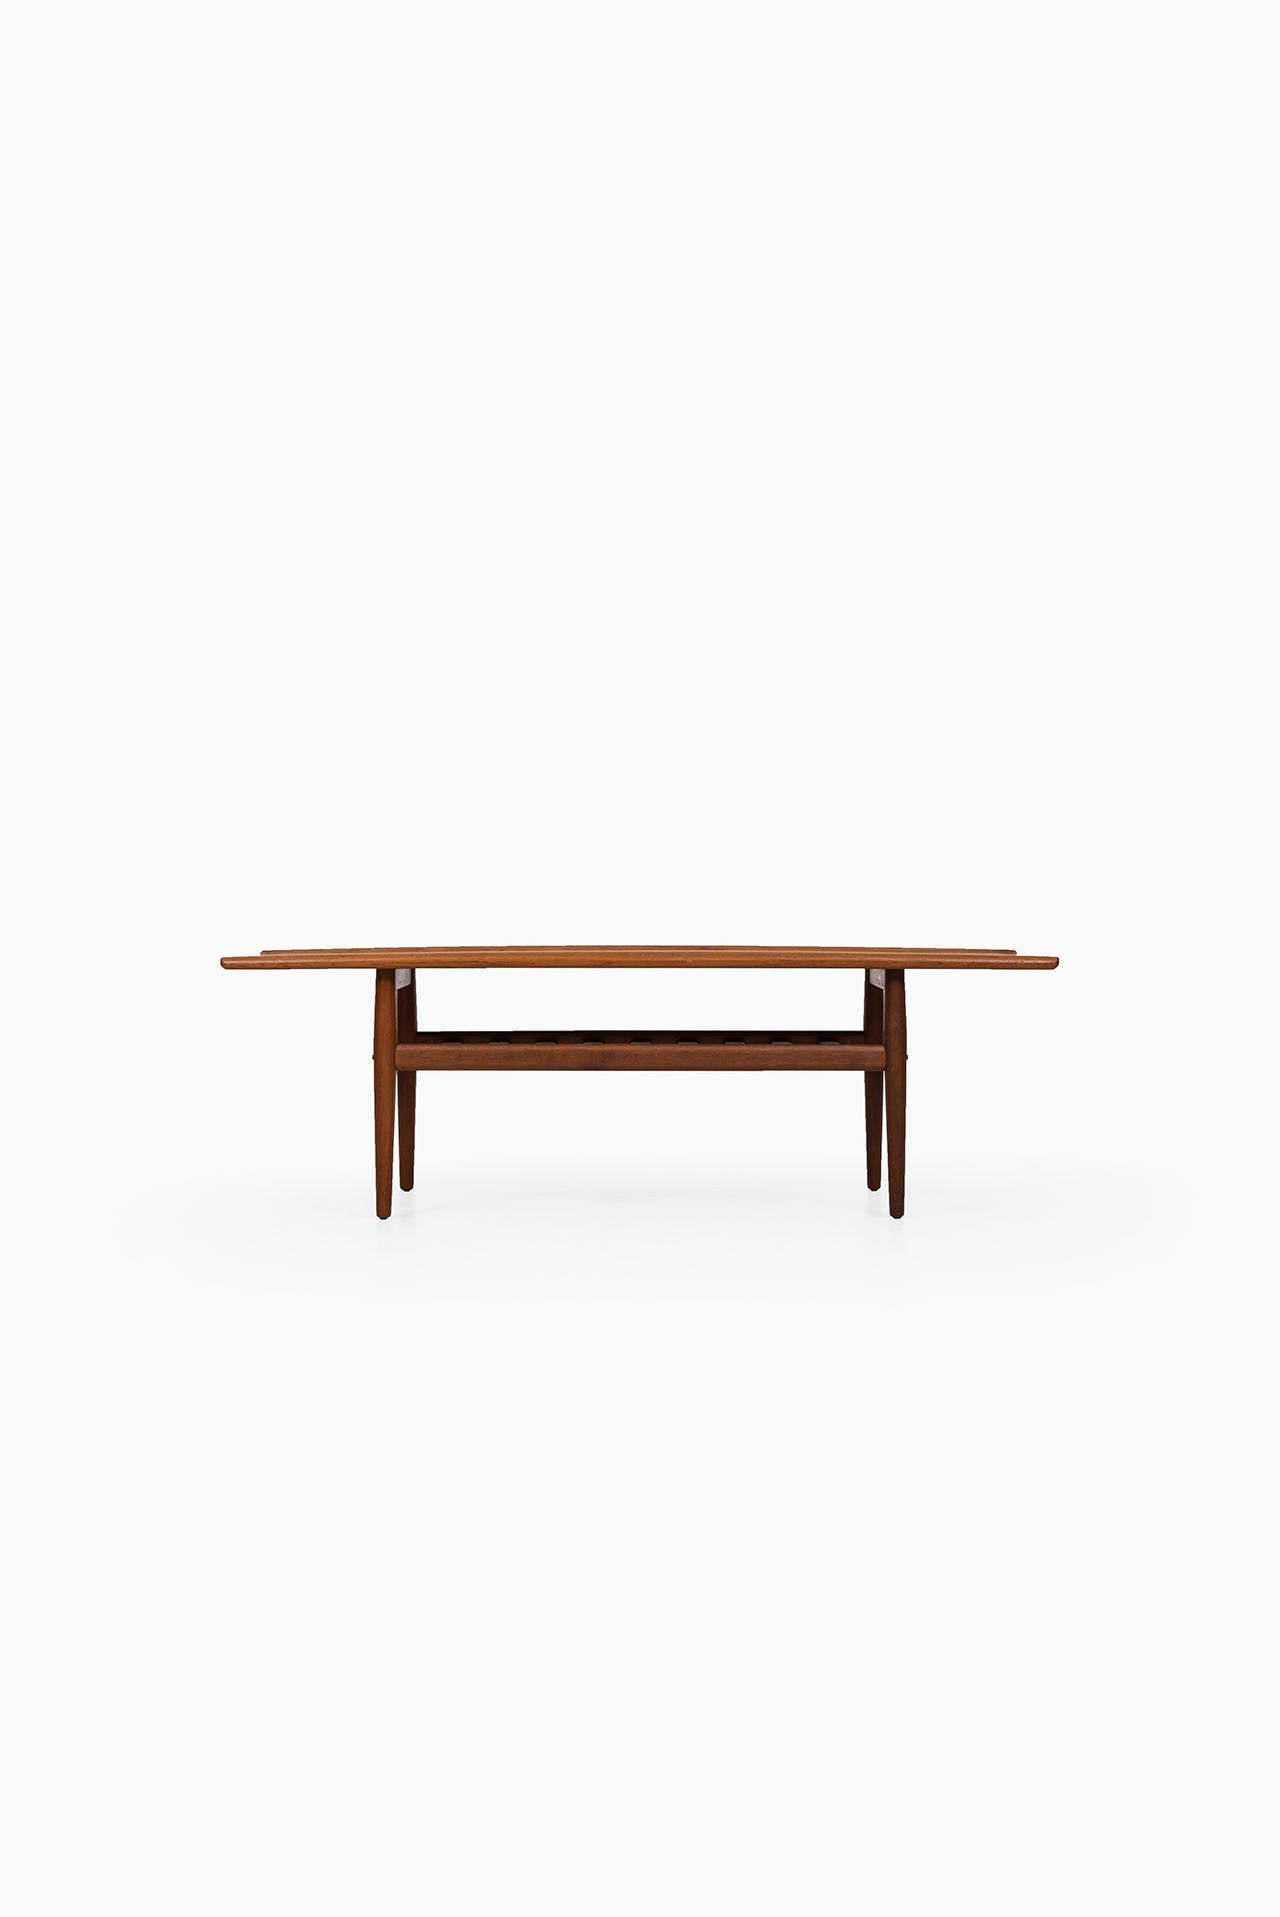 Coffee table in solid teak designed by Grete Jalk. Produced by Glostrup møbelfabrik in Denmark.